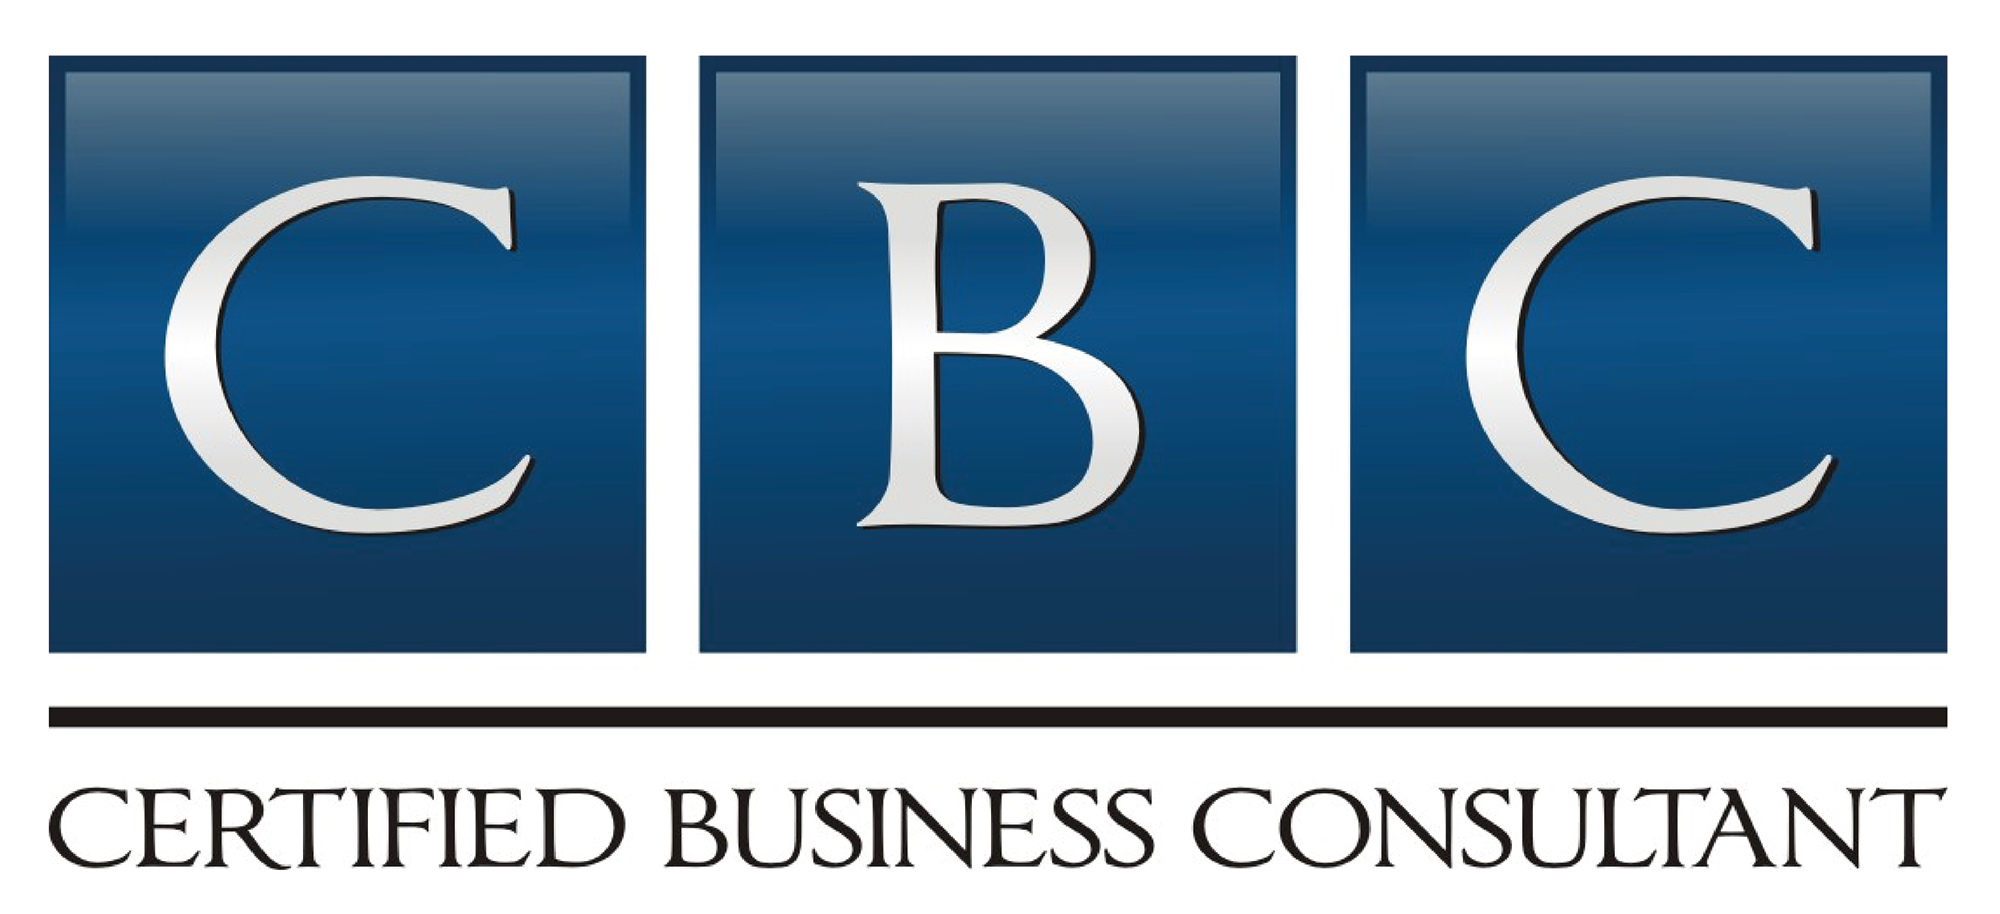 Business Consultant Training Certification Business Consultant